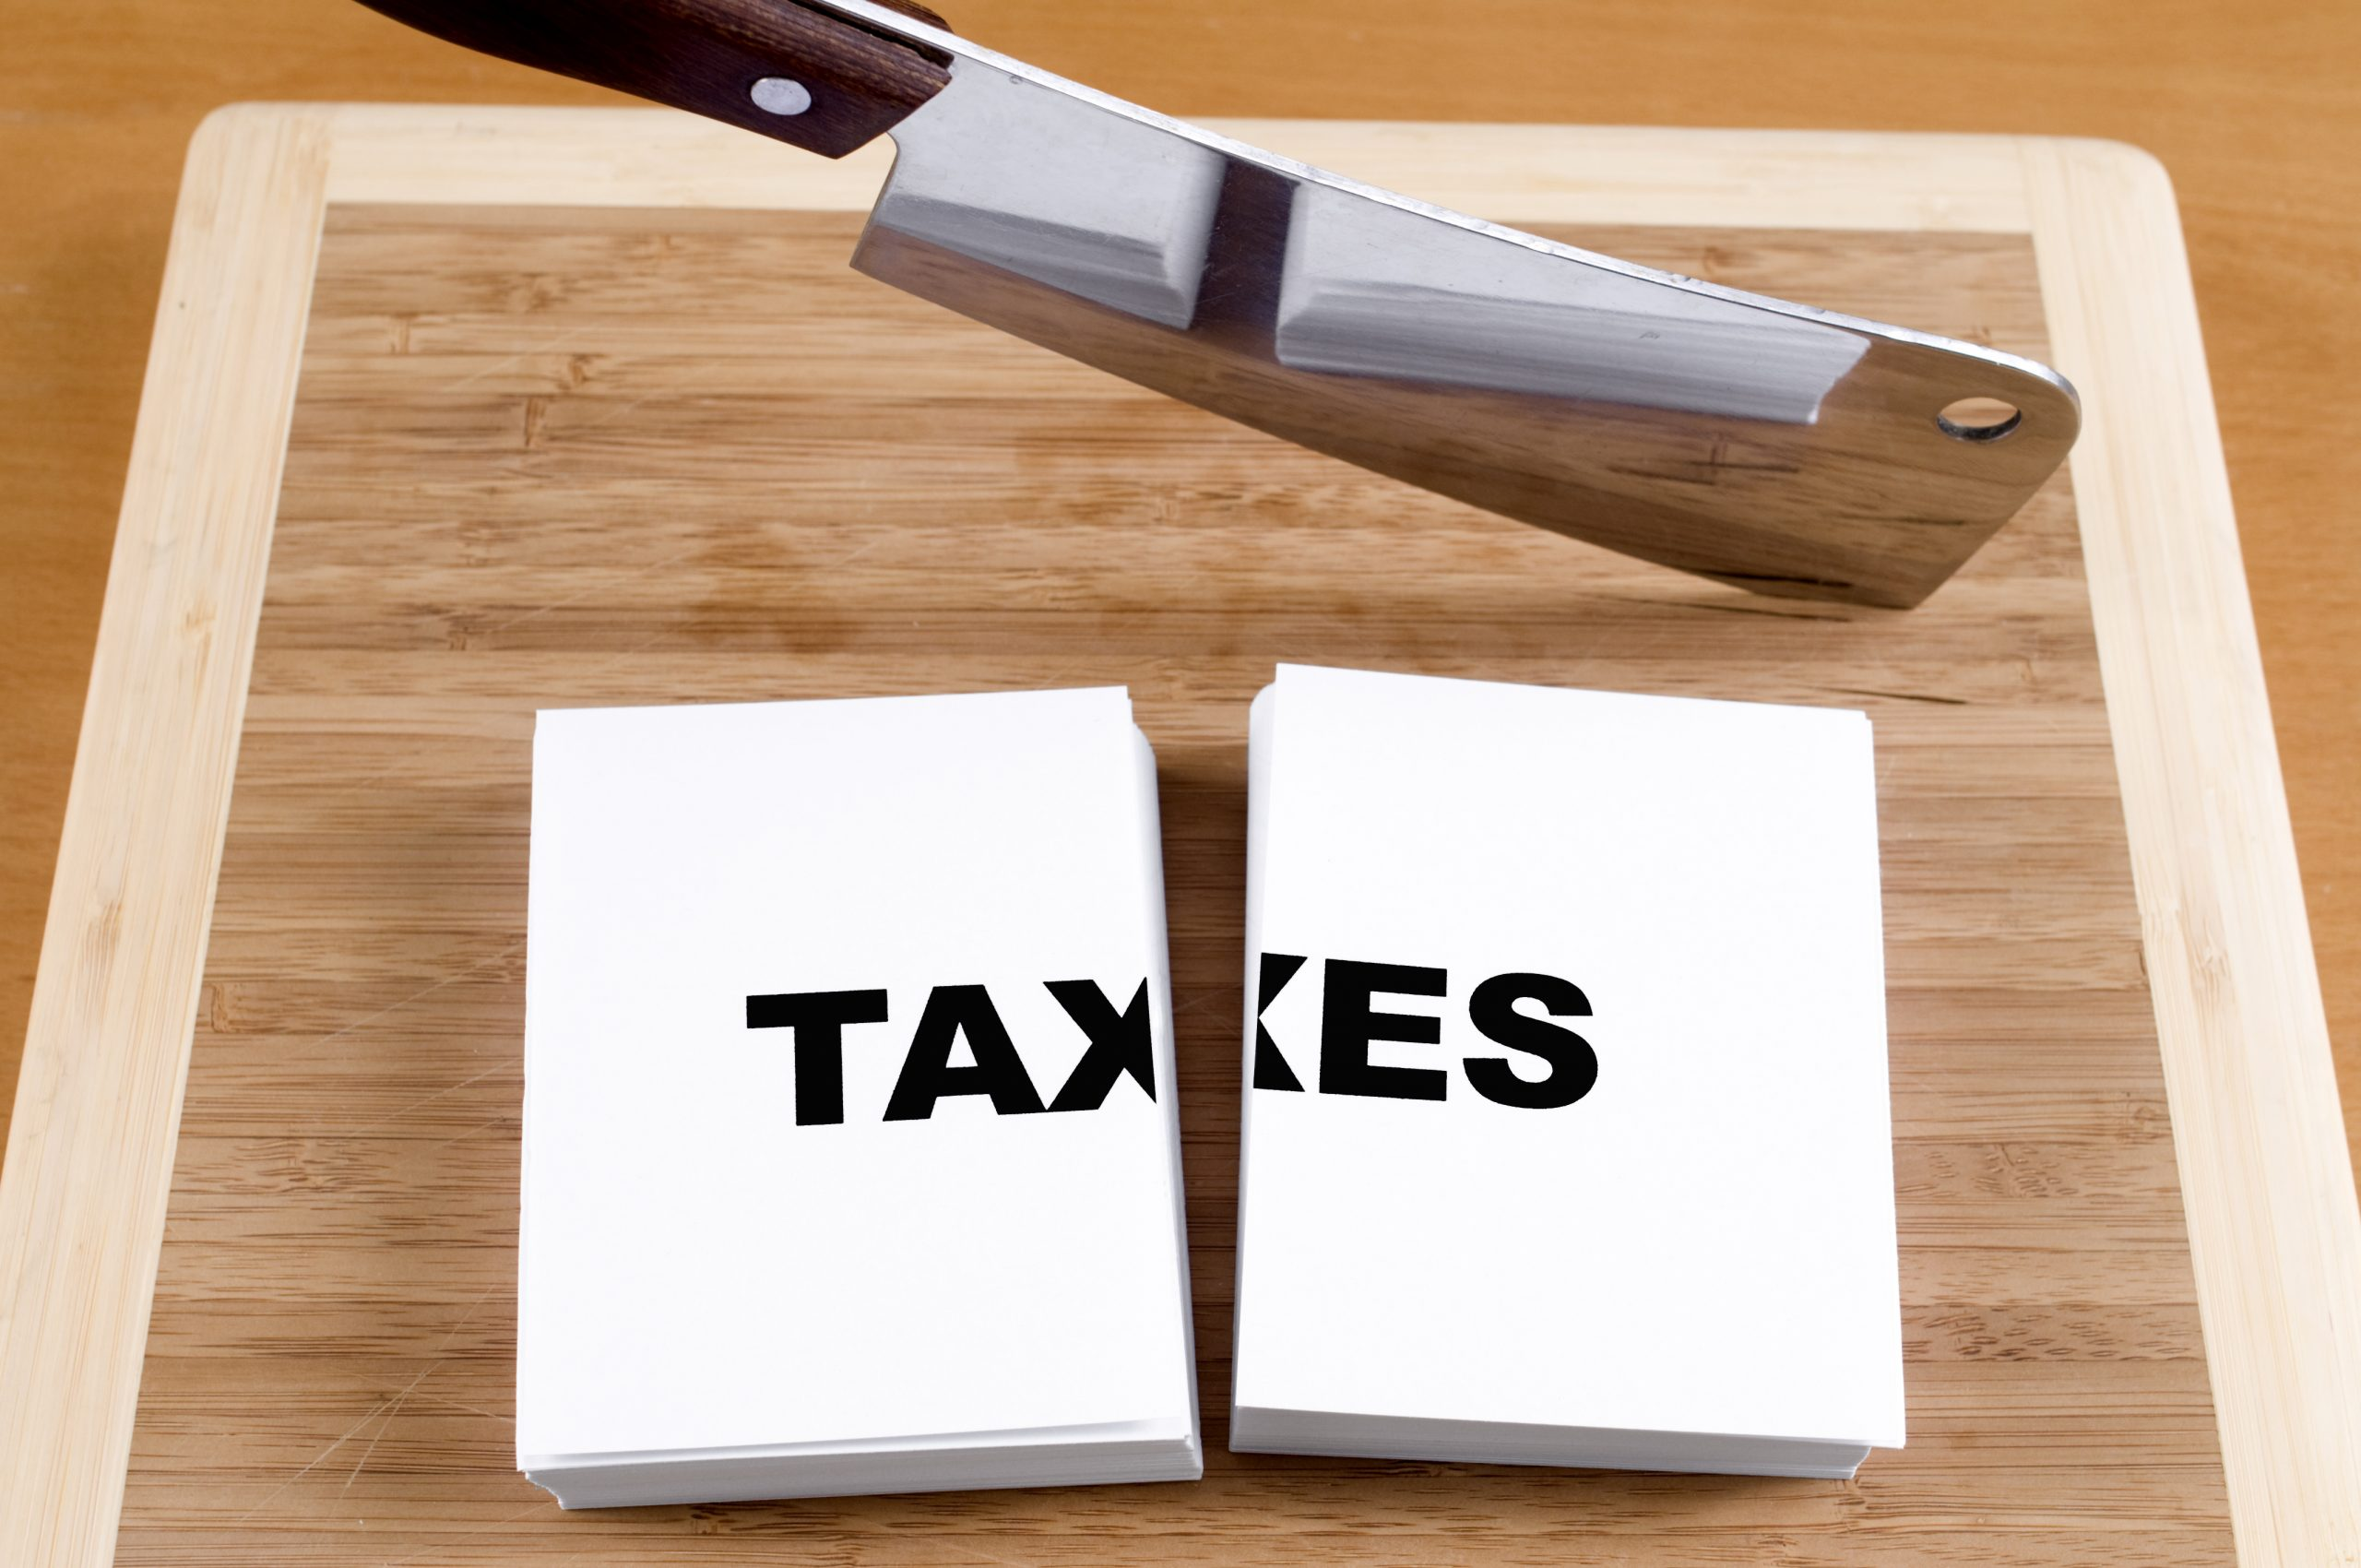 3 Tax Hacks for Filing Returns on Time with Less Stress and More Money